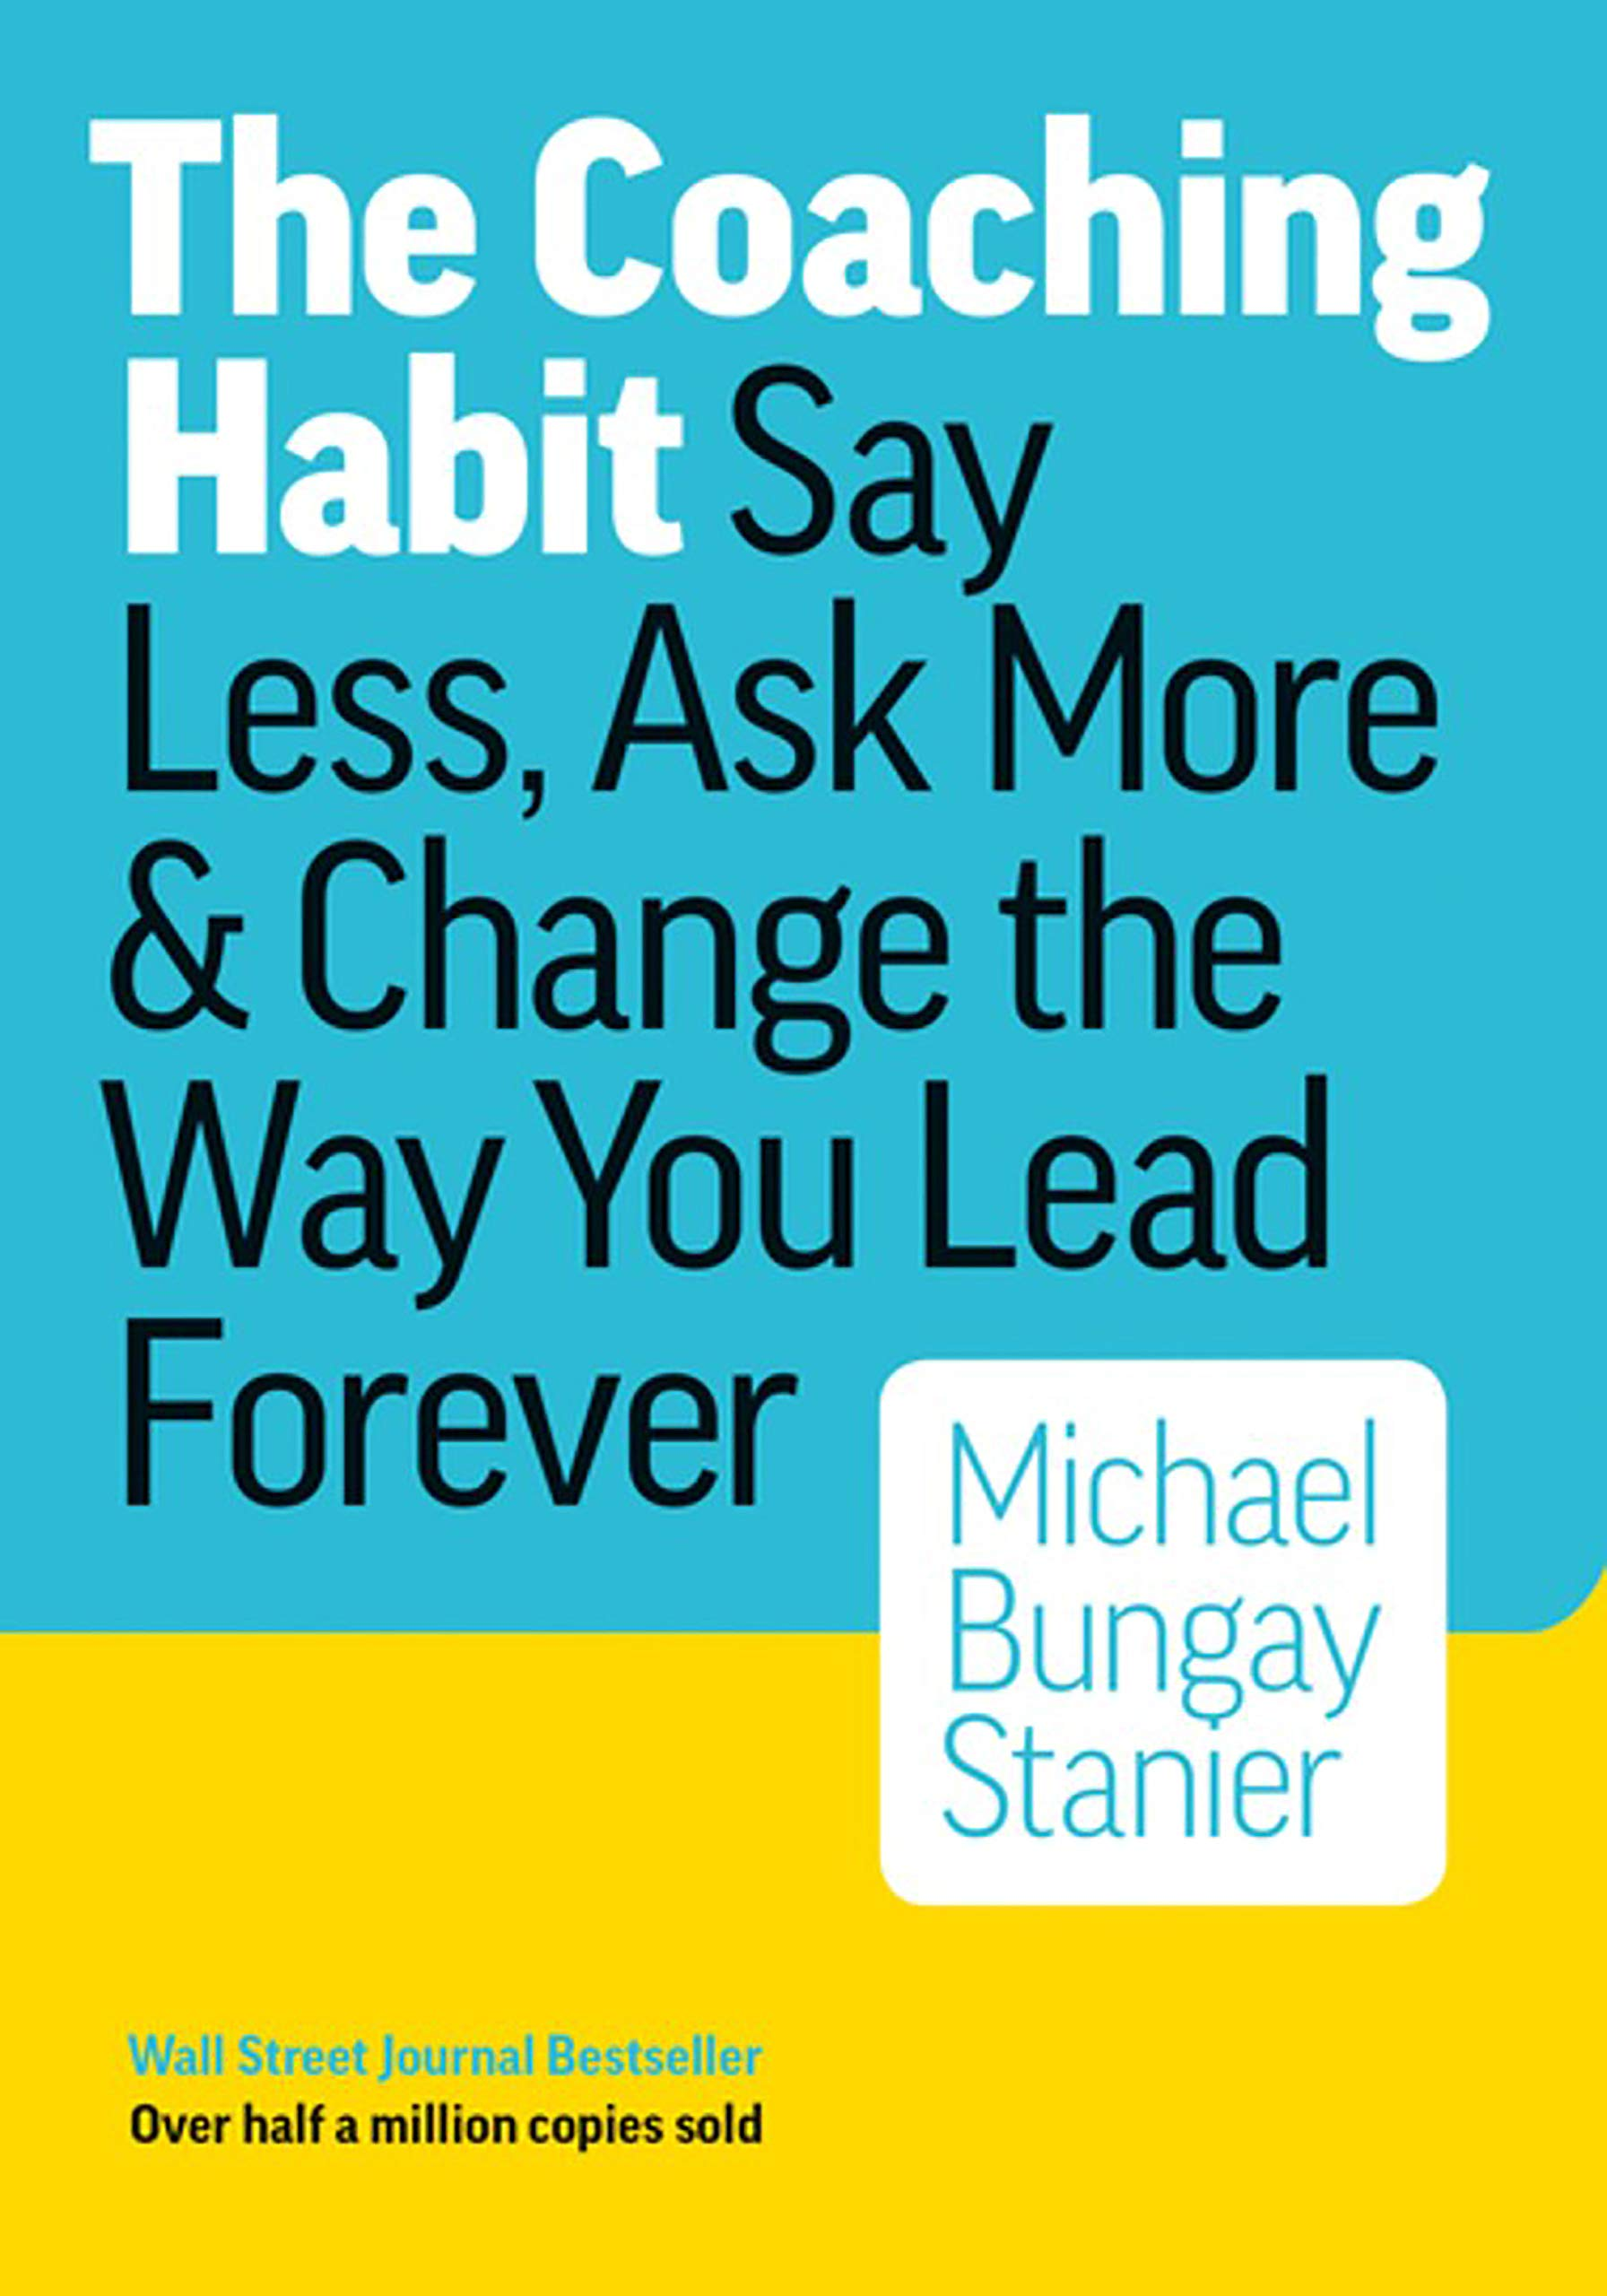 The Coaching Habit: Say Less, Ask More & Change the Way You Lead Forever by Michael Bungay Stanier